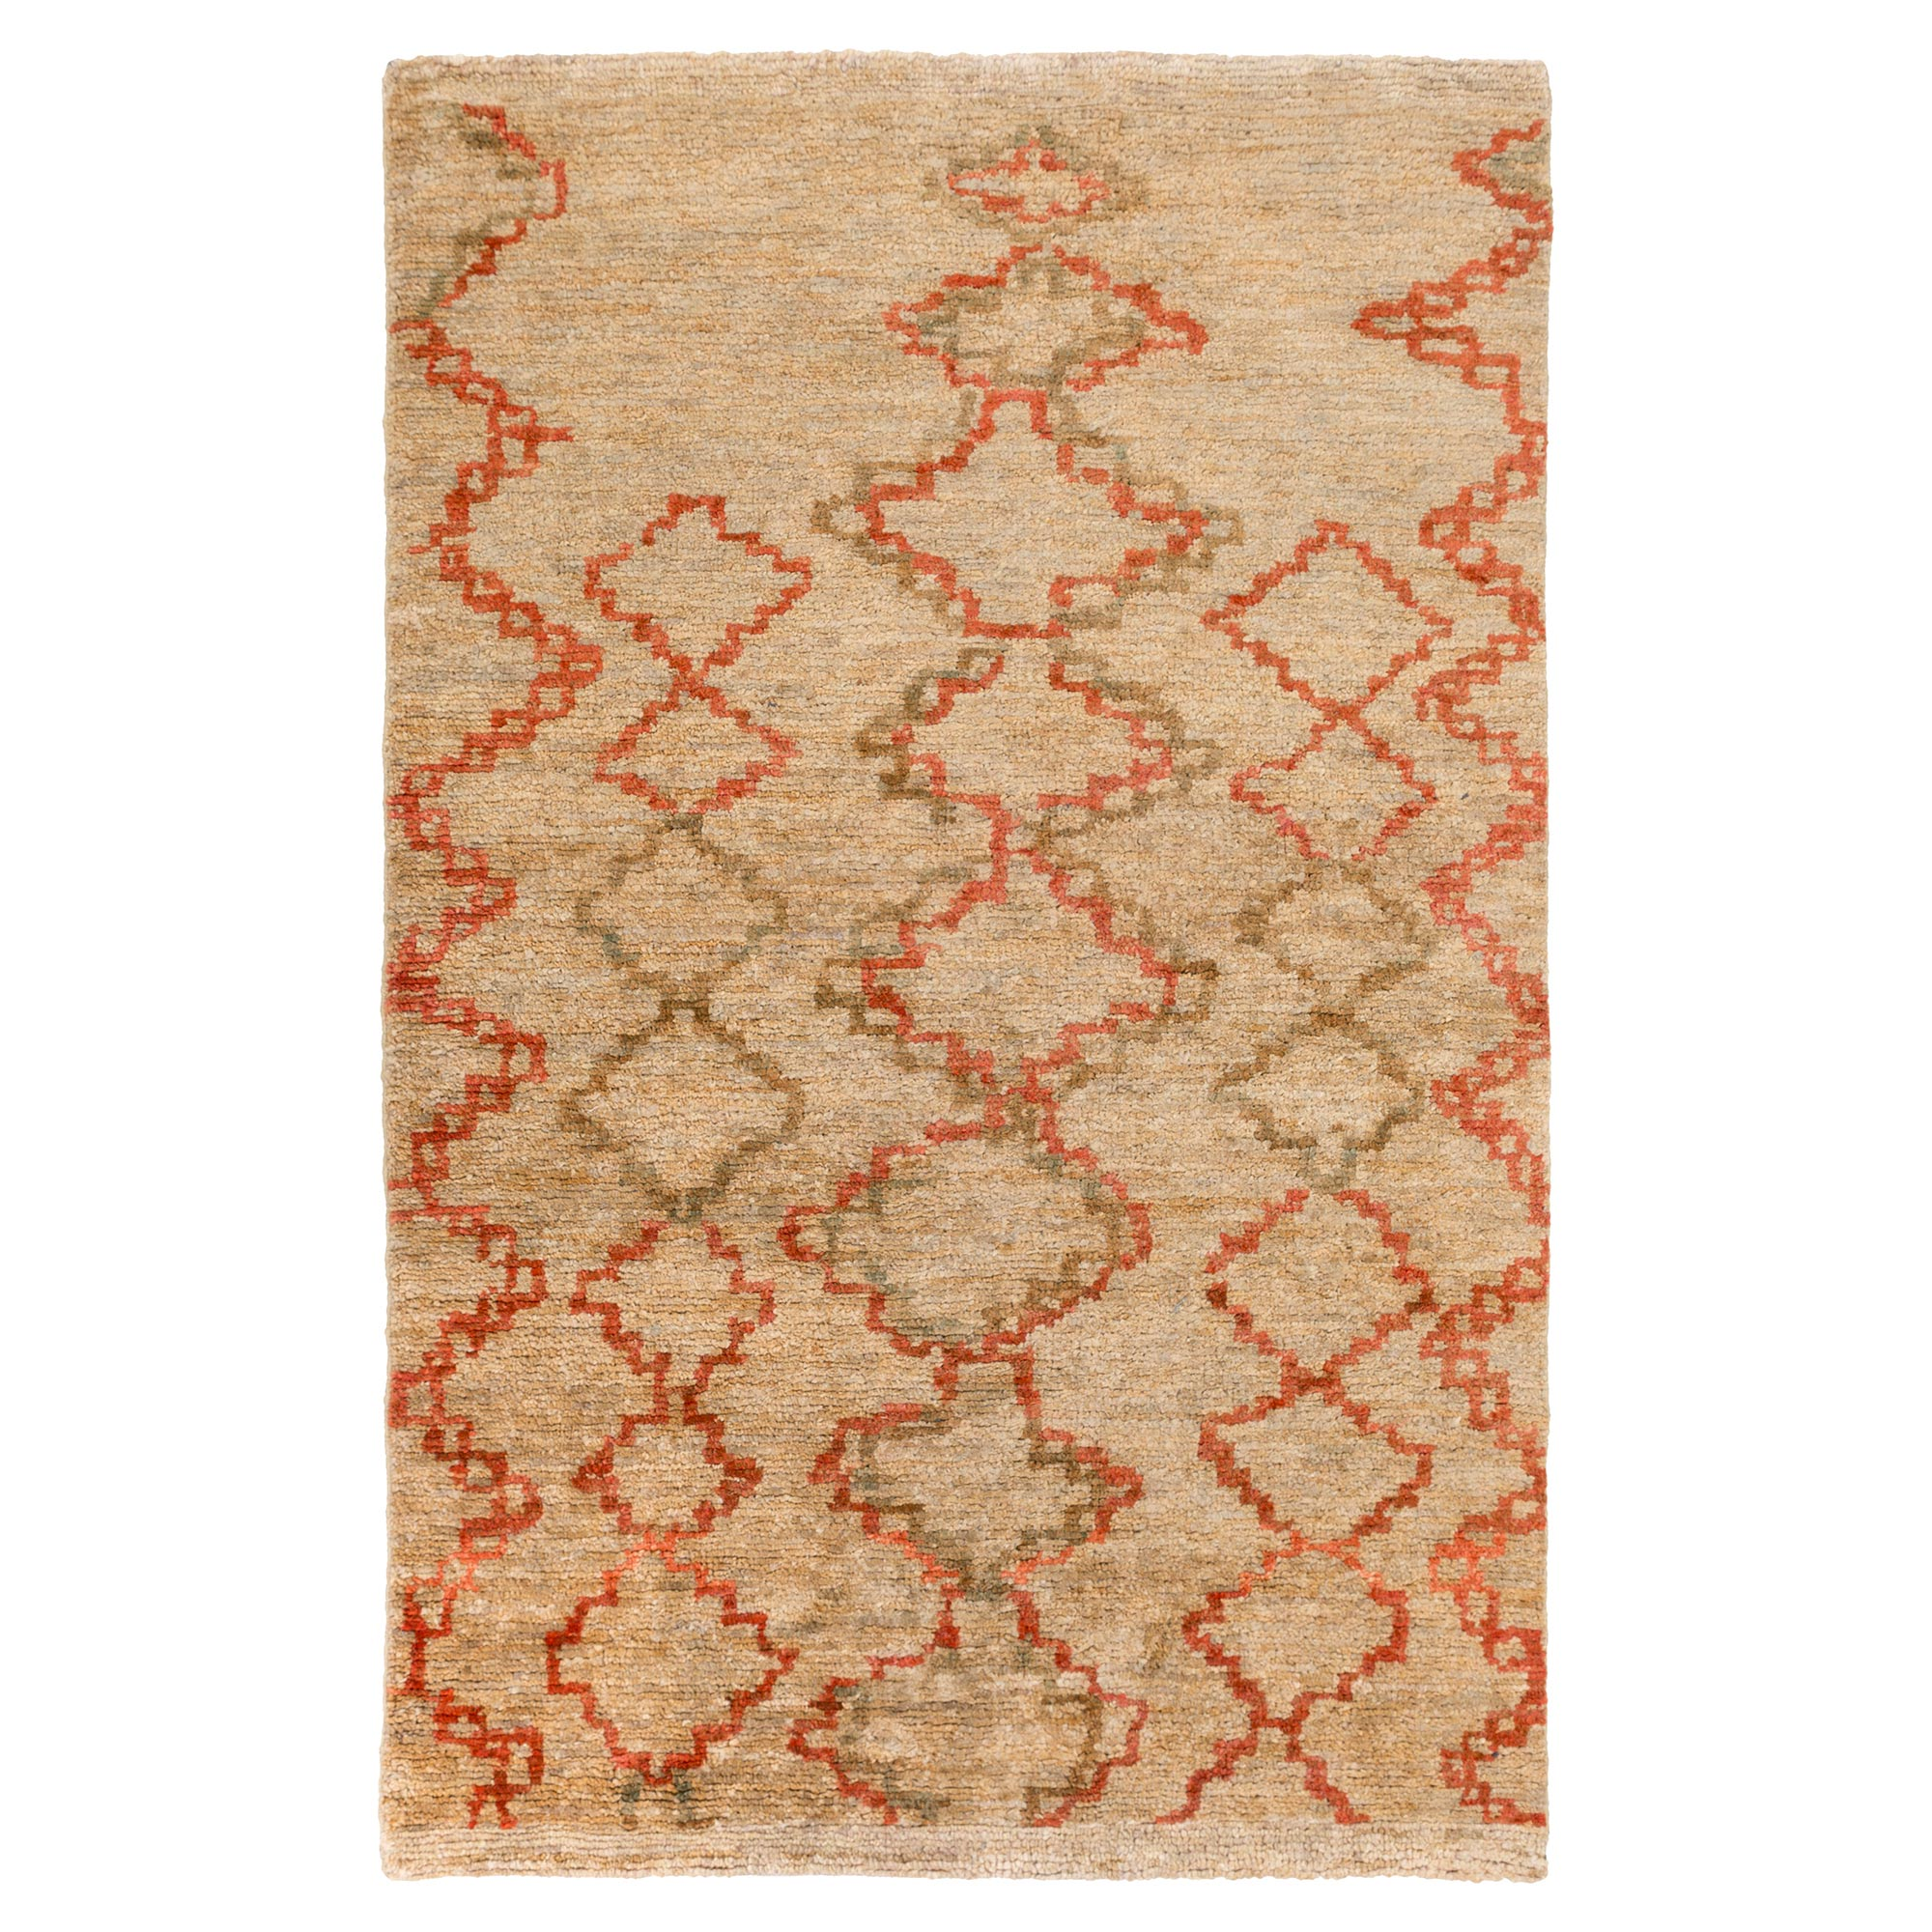 Nalia Bazaar Burnt Orange Beige Jute Rug - 2x3